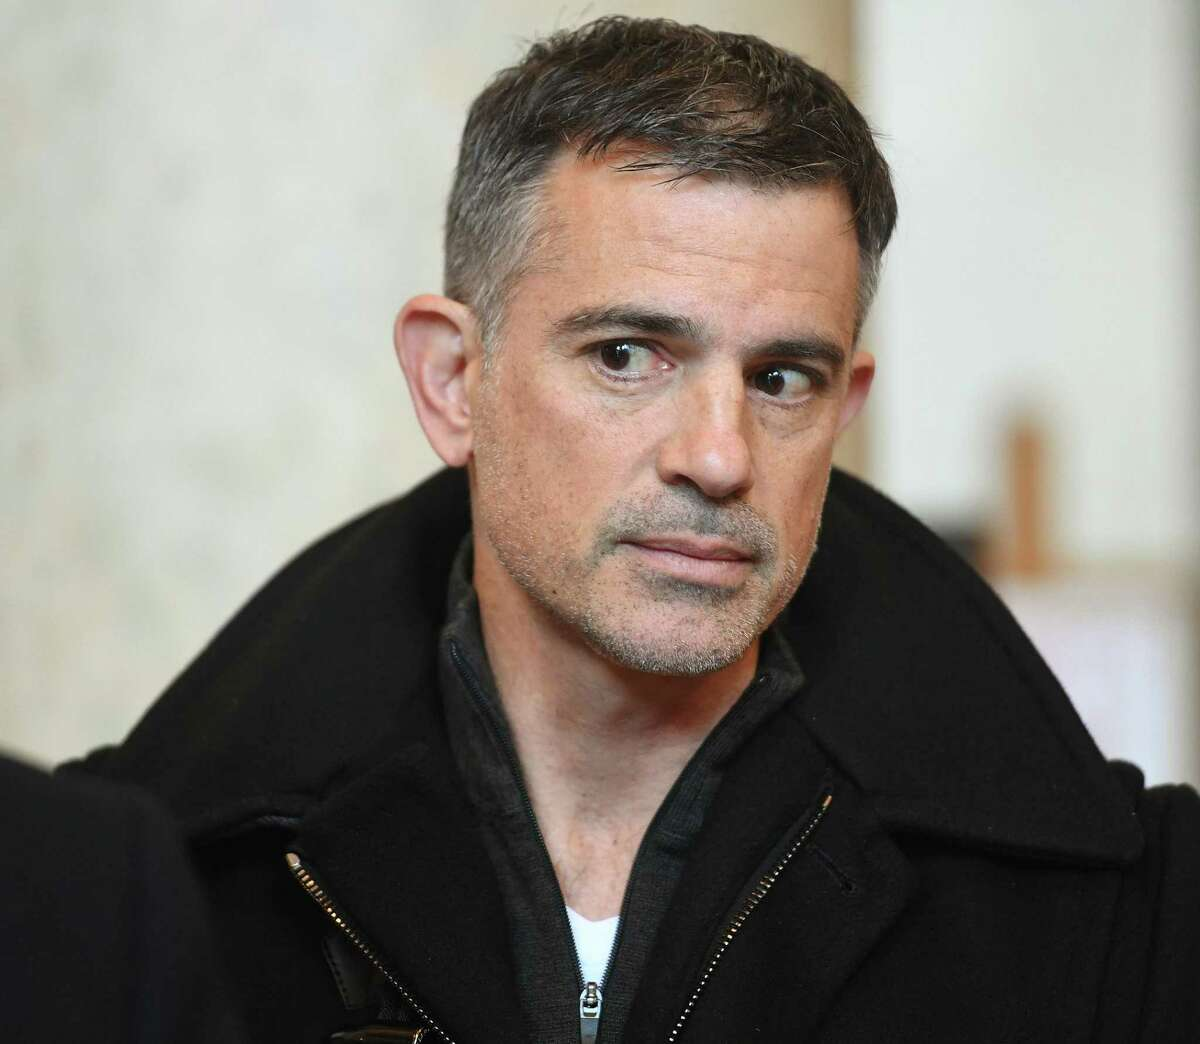 File photo of Fotis Dulos as he left the Connecticut State Supreme Court in Hartford, Conn., on Thursday, Dec. 12, 2019.